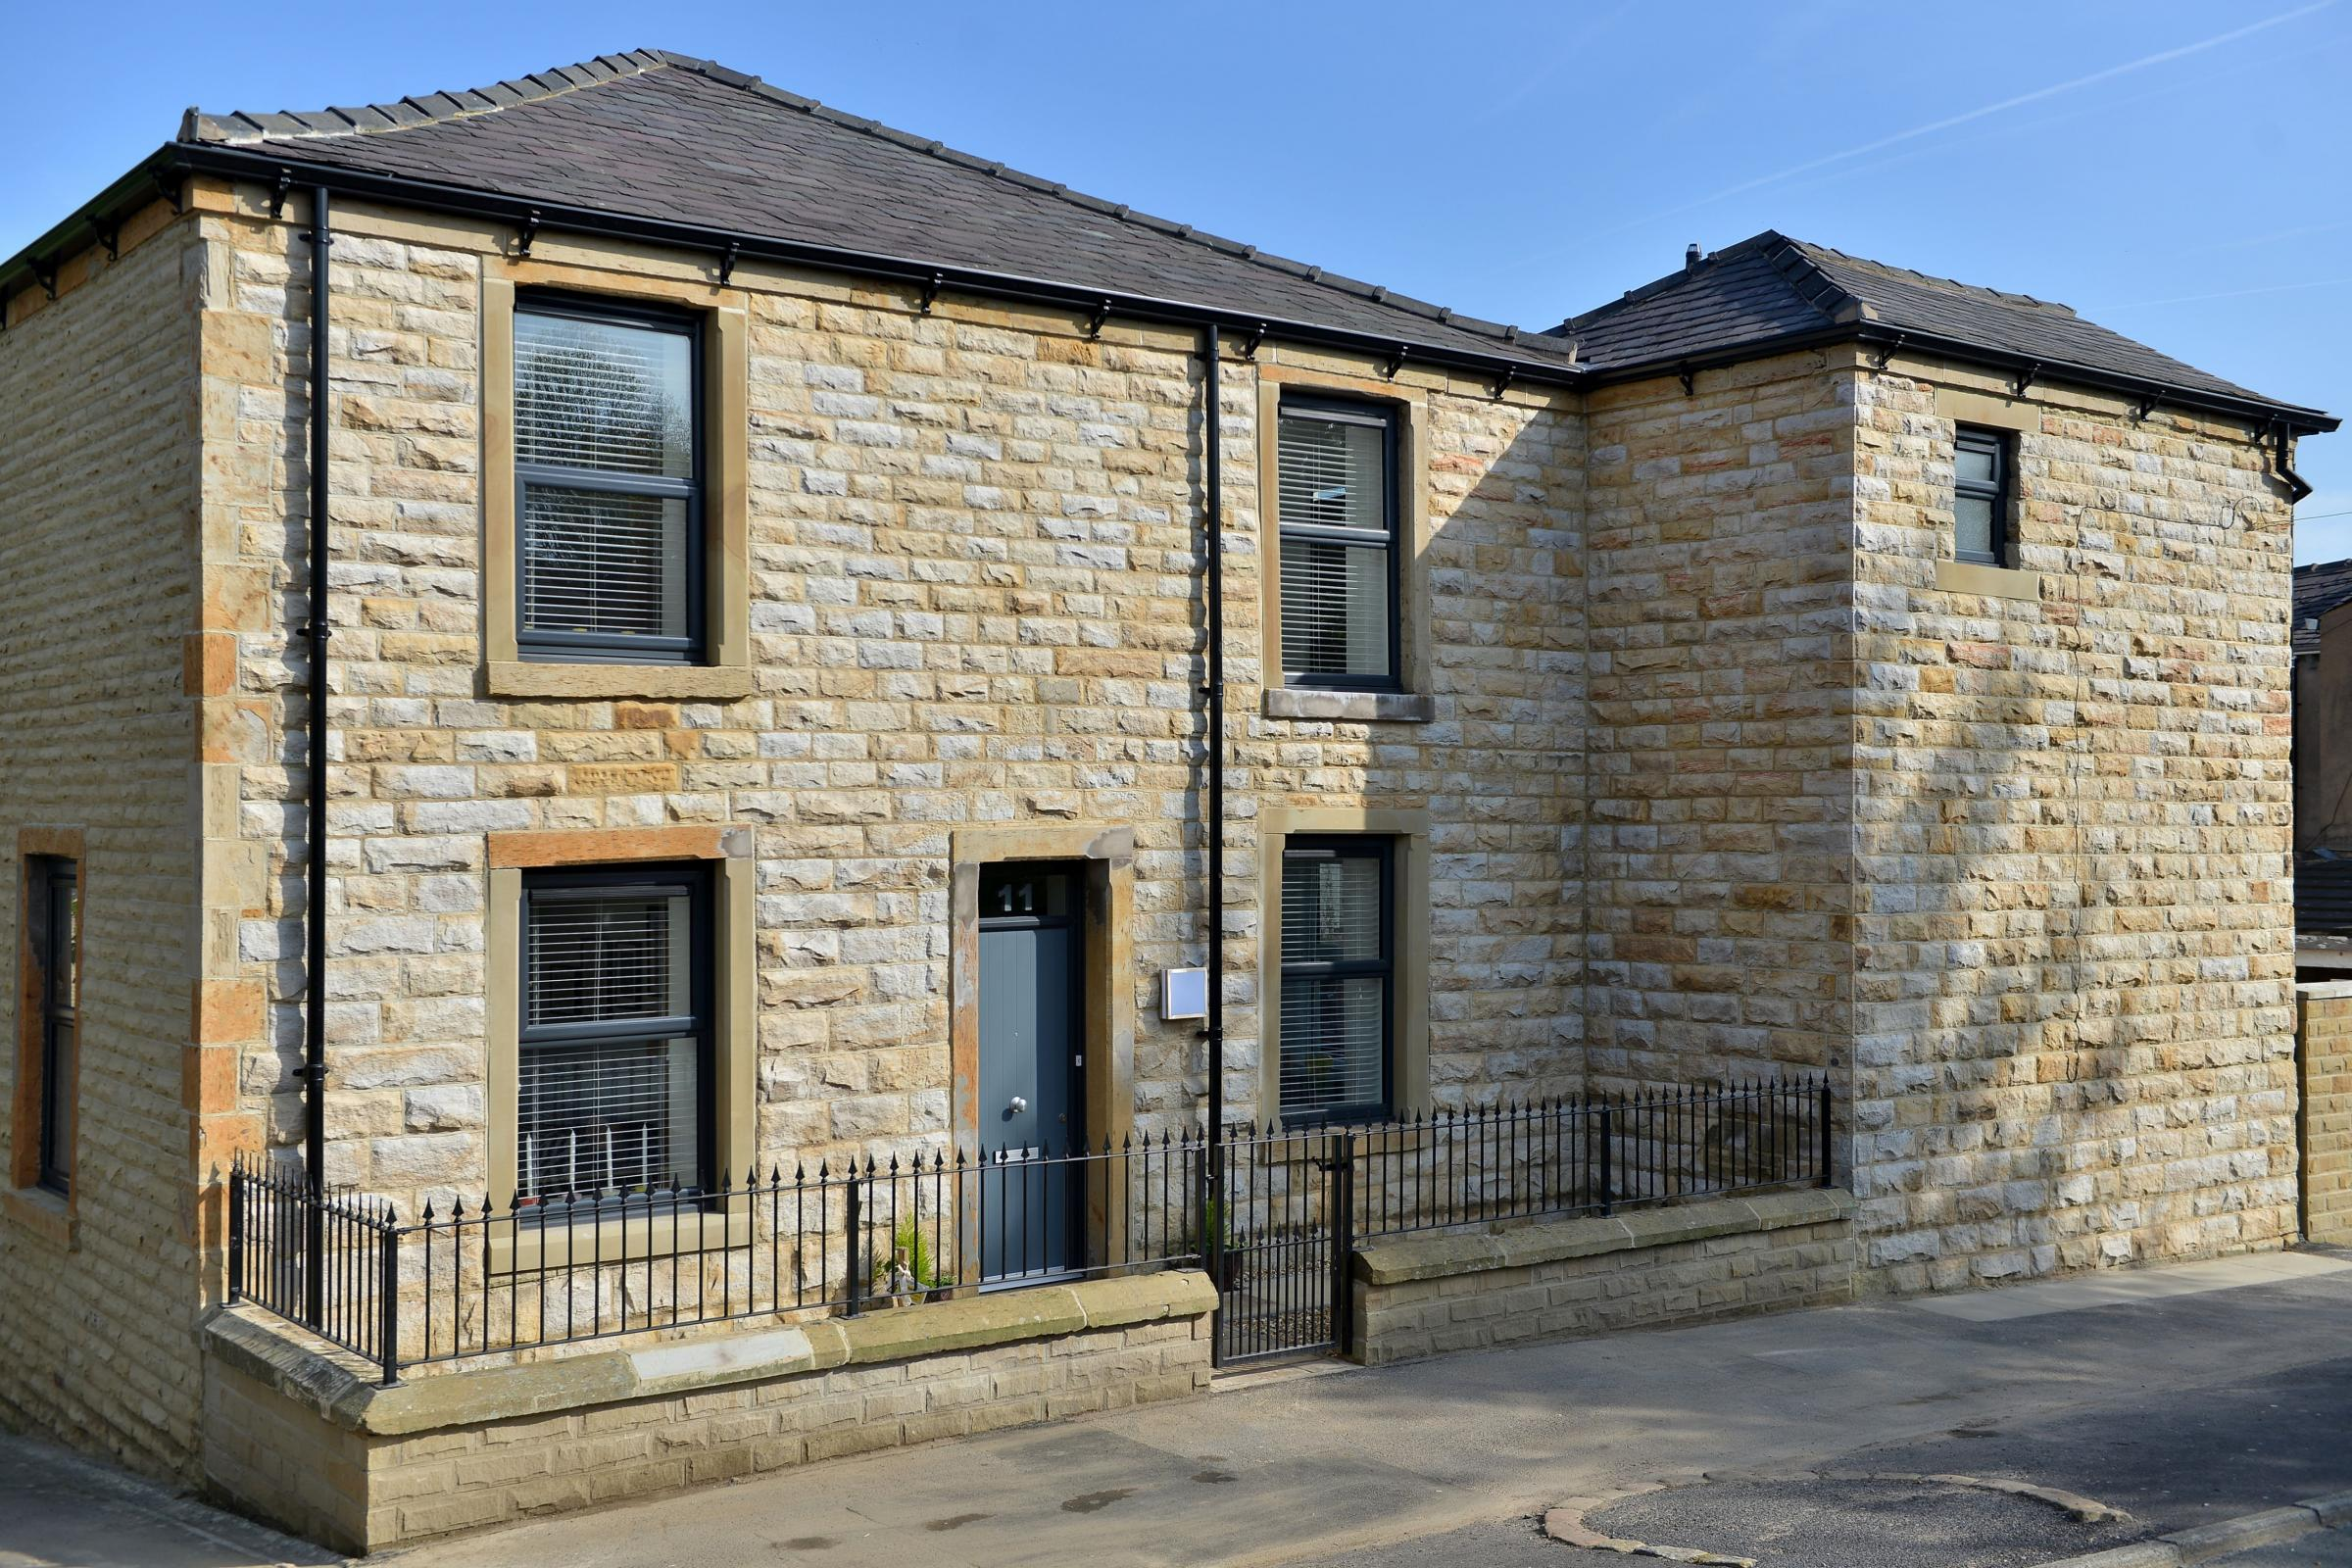 New homes in Accrington regeneration area unveiled